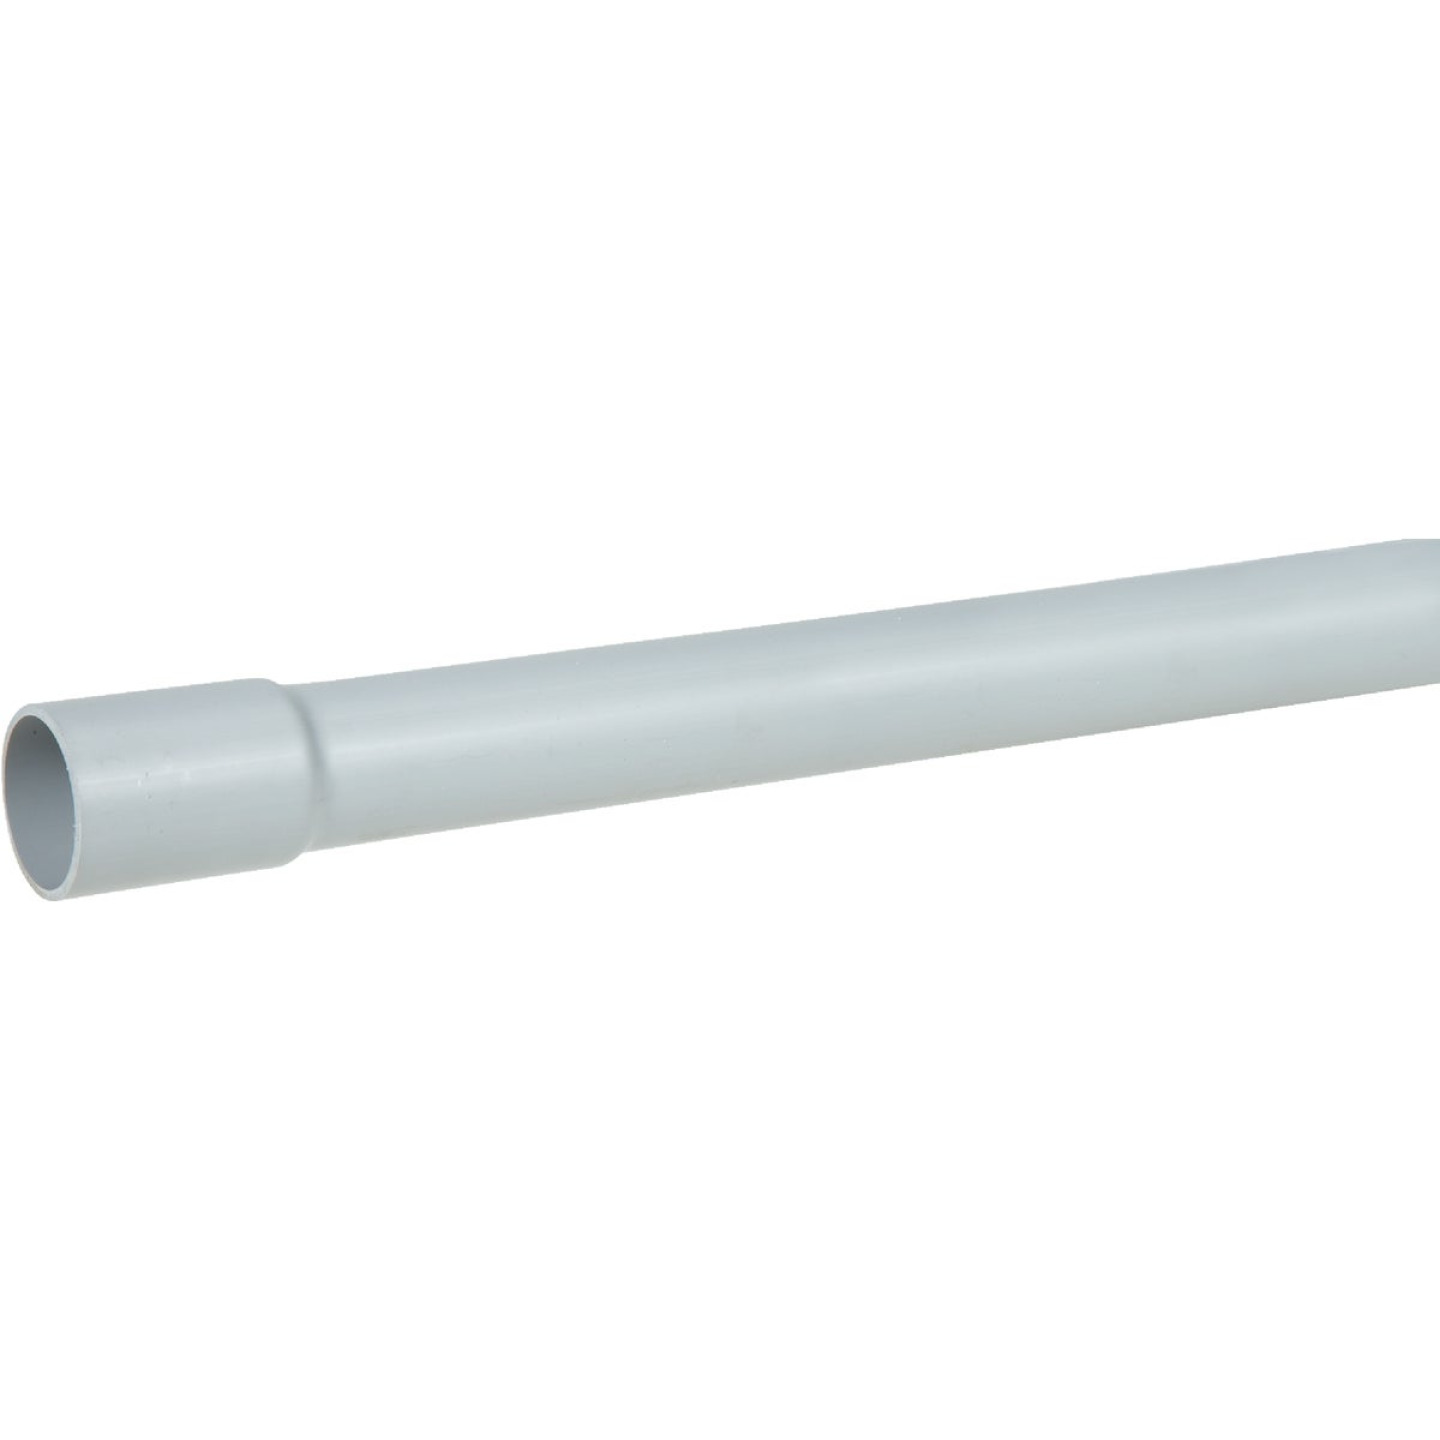 Allied 1 In. x 10 Ft. Schedule 80 PVC Conduit Image 1